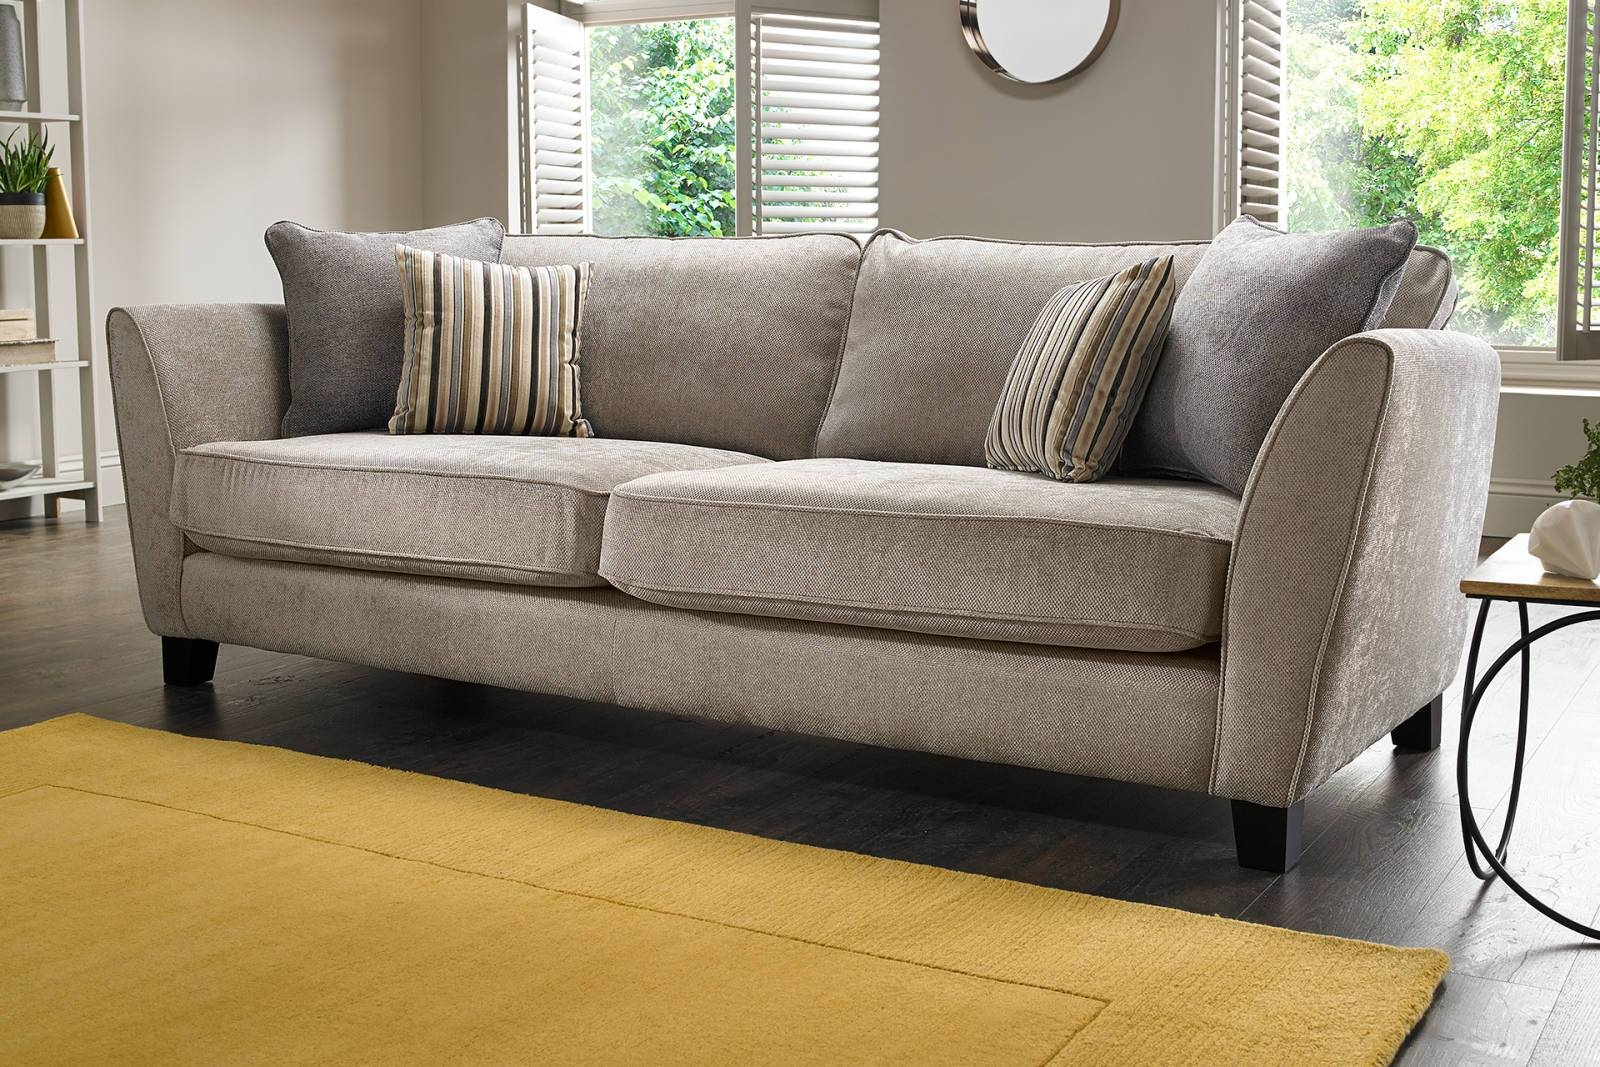 Canterbury | Sofology with Canterbury Leather Sofas (Image 10 of 30)